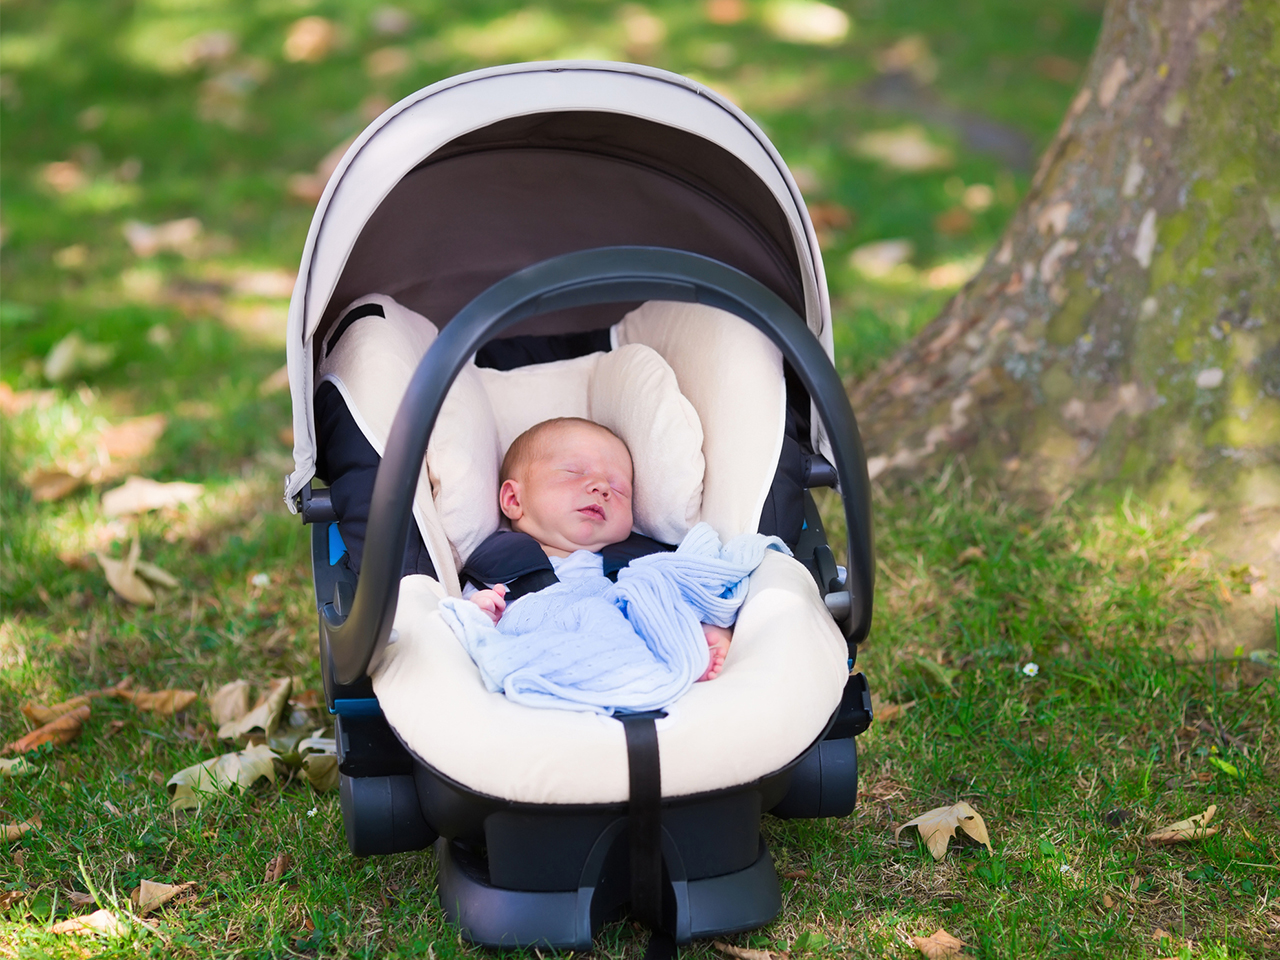 Letting your baby sleep in the car seat is super risky—here's why